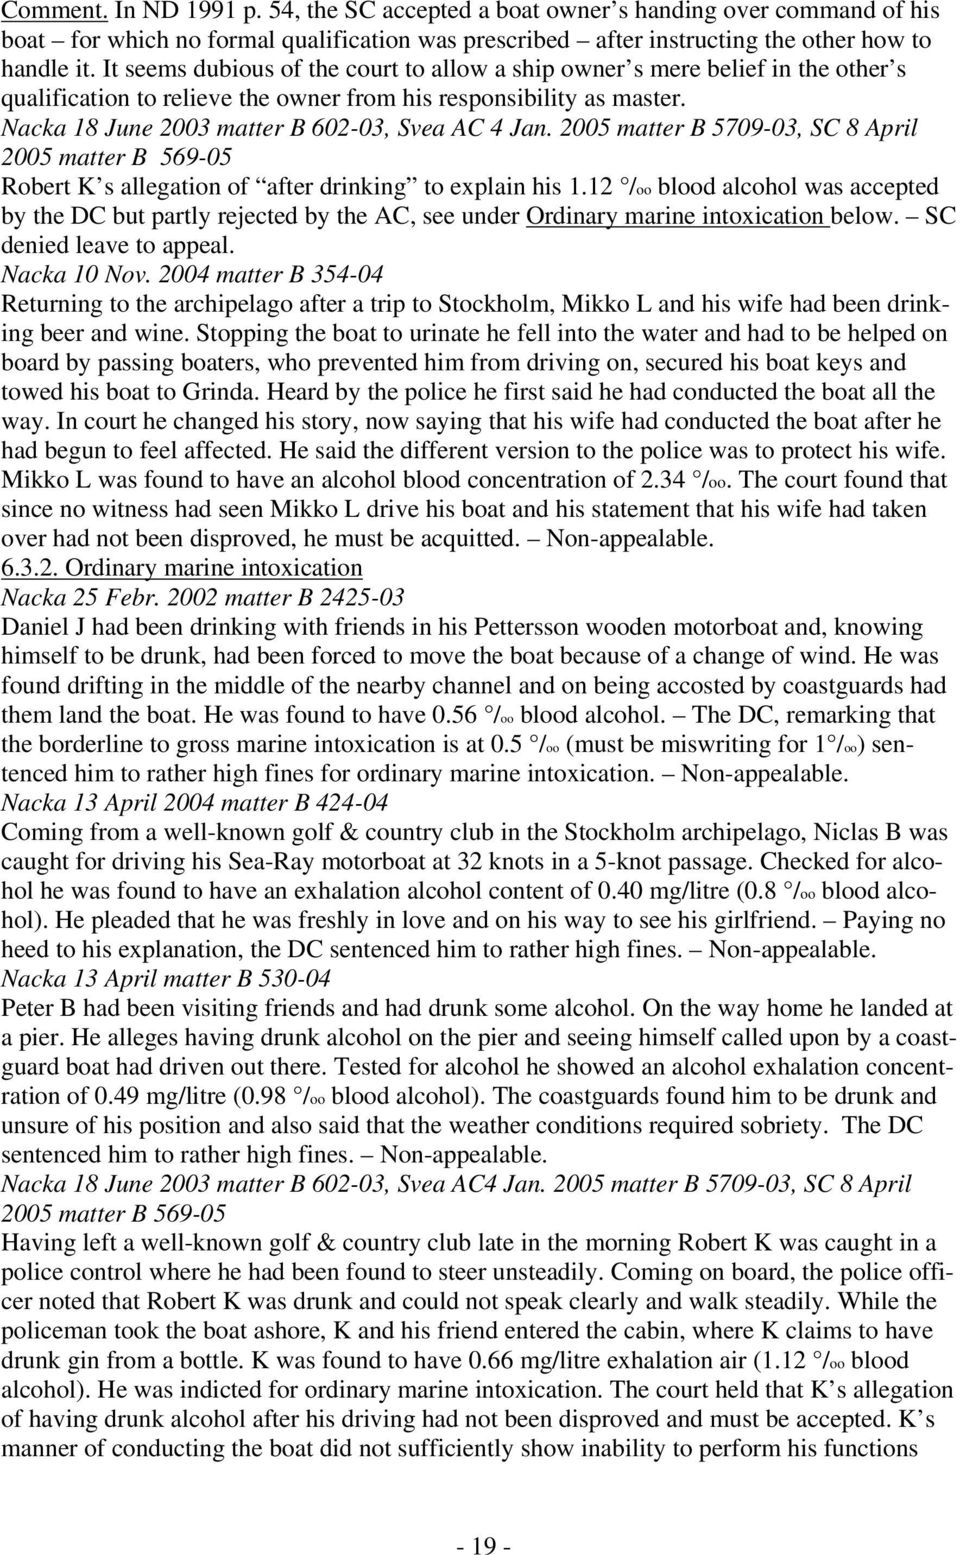 Nacka 18 June 2003 matter B 602-03, Svea AC 4 Jan. 2005 matter B 5709-03, SC 8 April 2005 matter B 569-05 Robert K s allegation of after drinking to explain his 1.